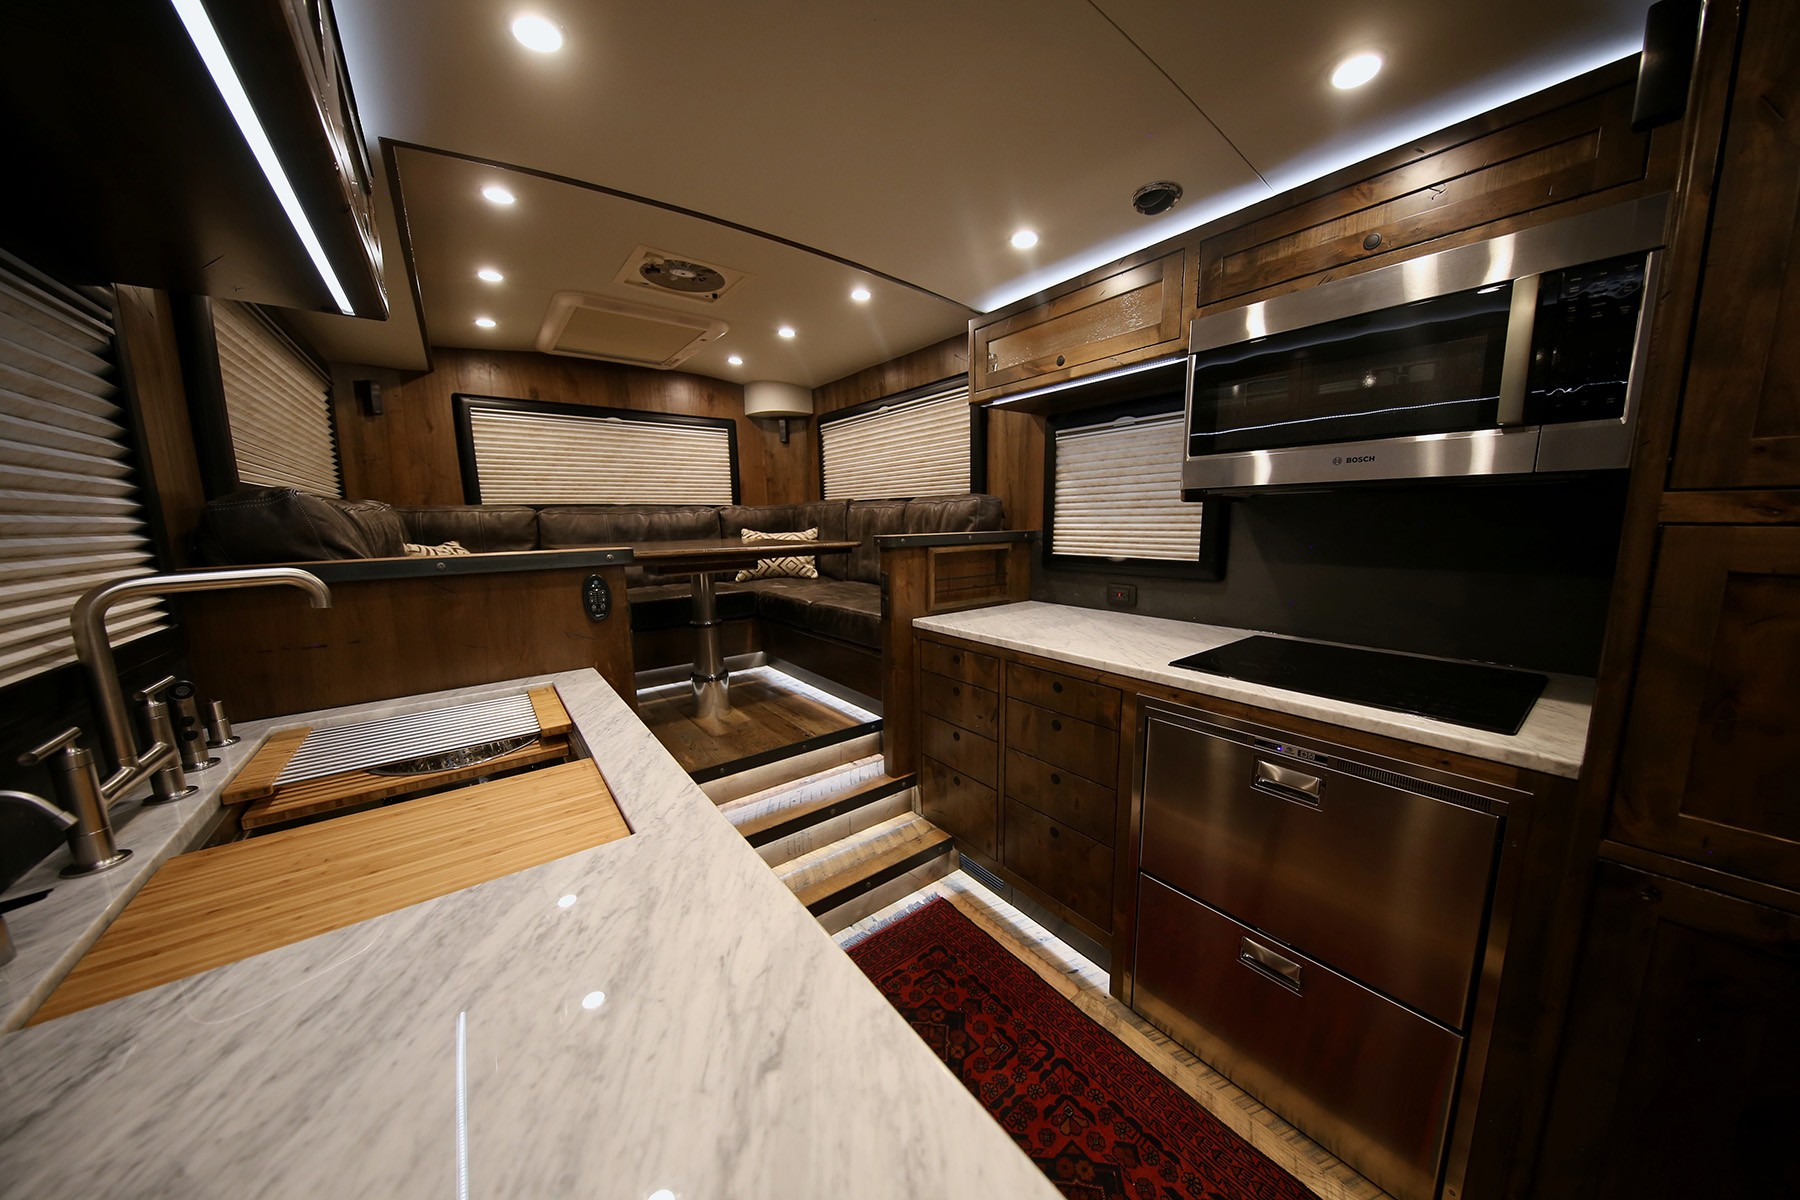 Take A Look Inside These 1 Million Luxury RVs That Are Probably Nicer Than Your House